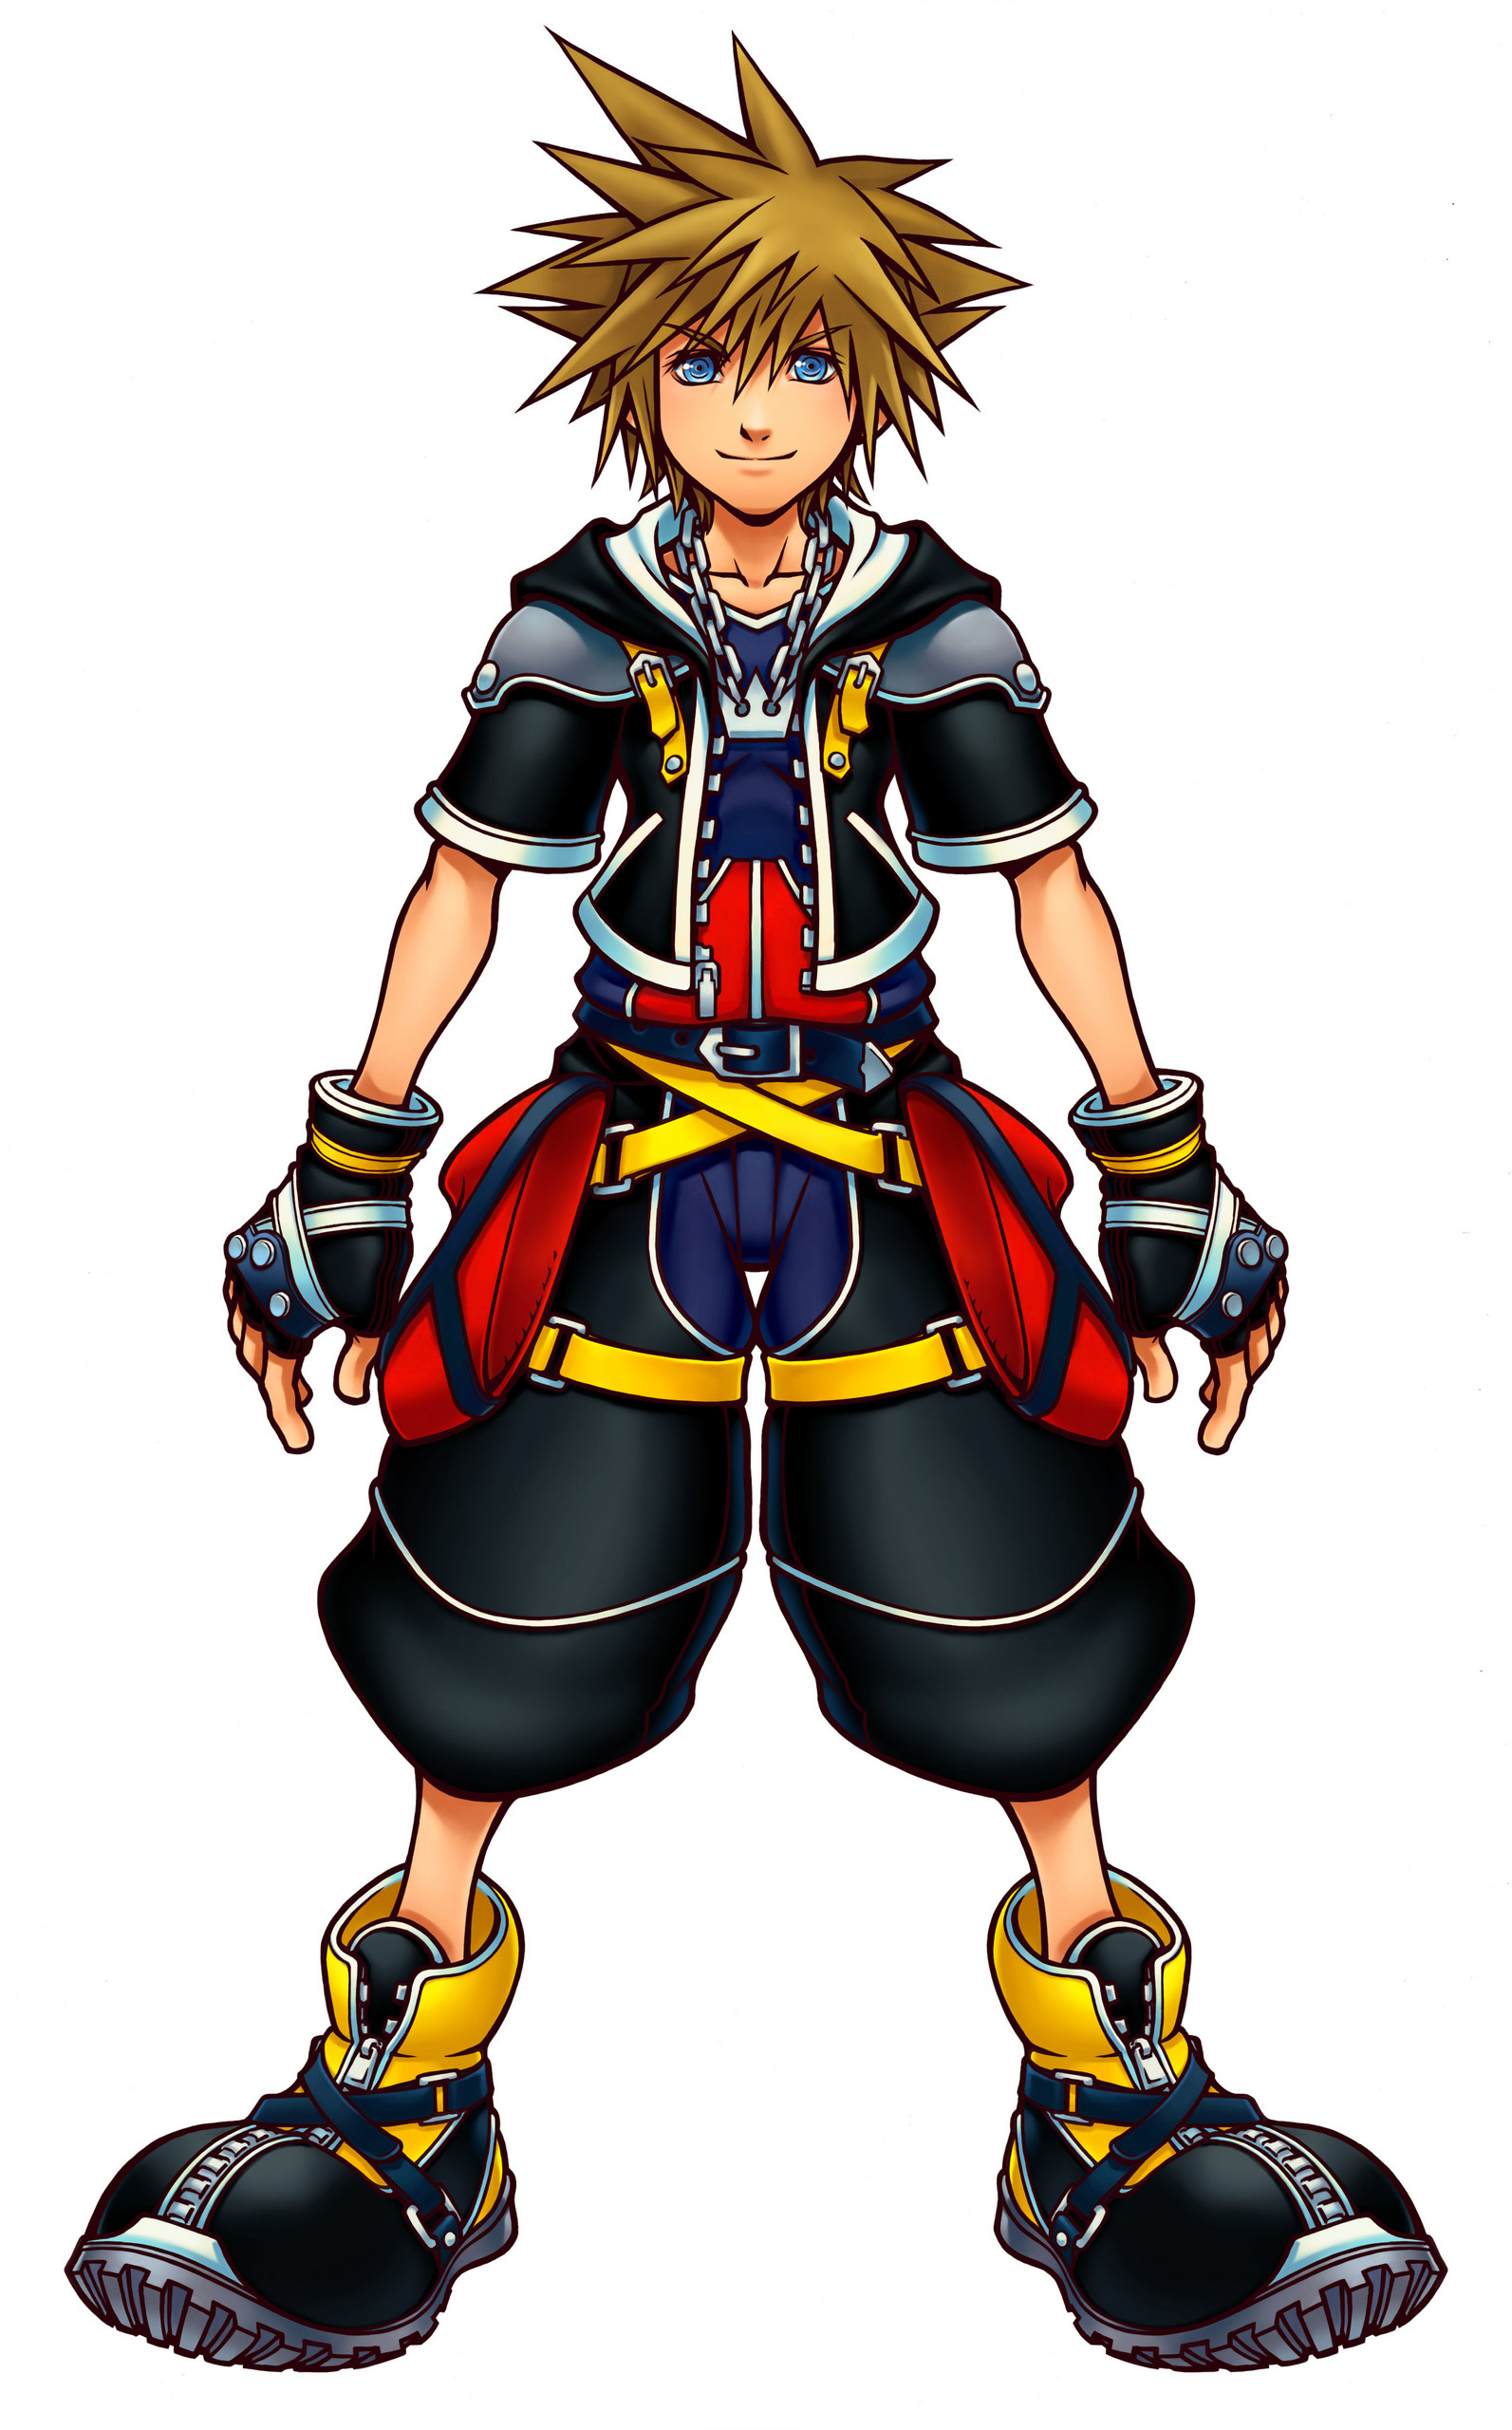 kingdom hearts images - photo #18